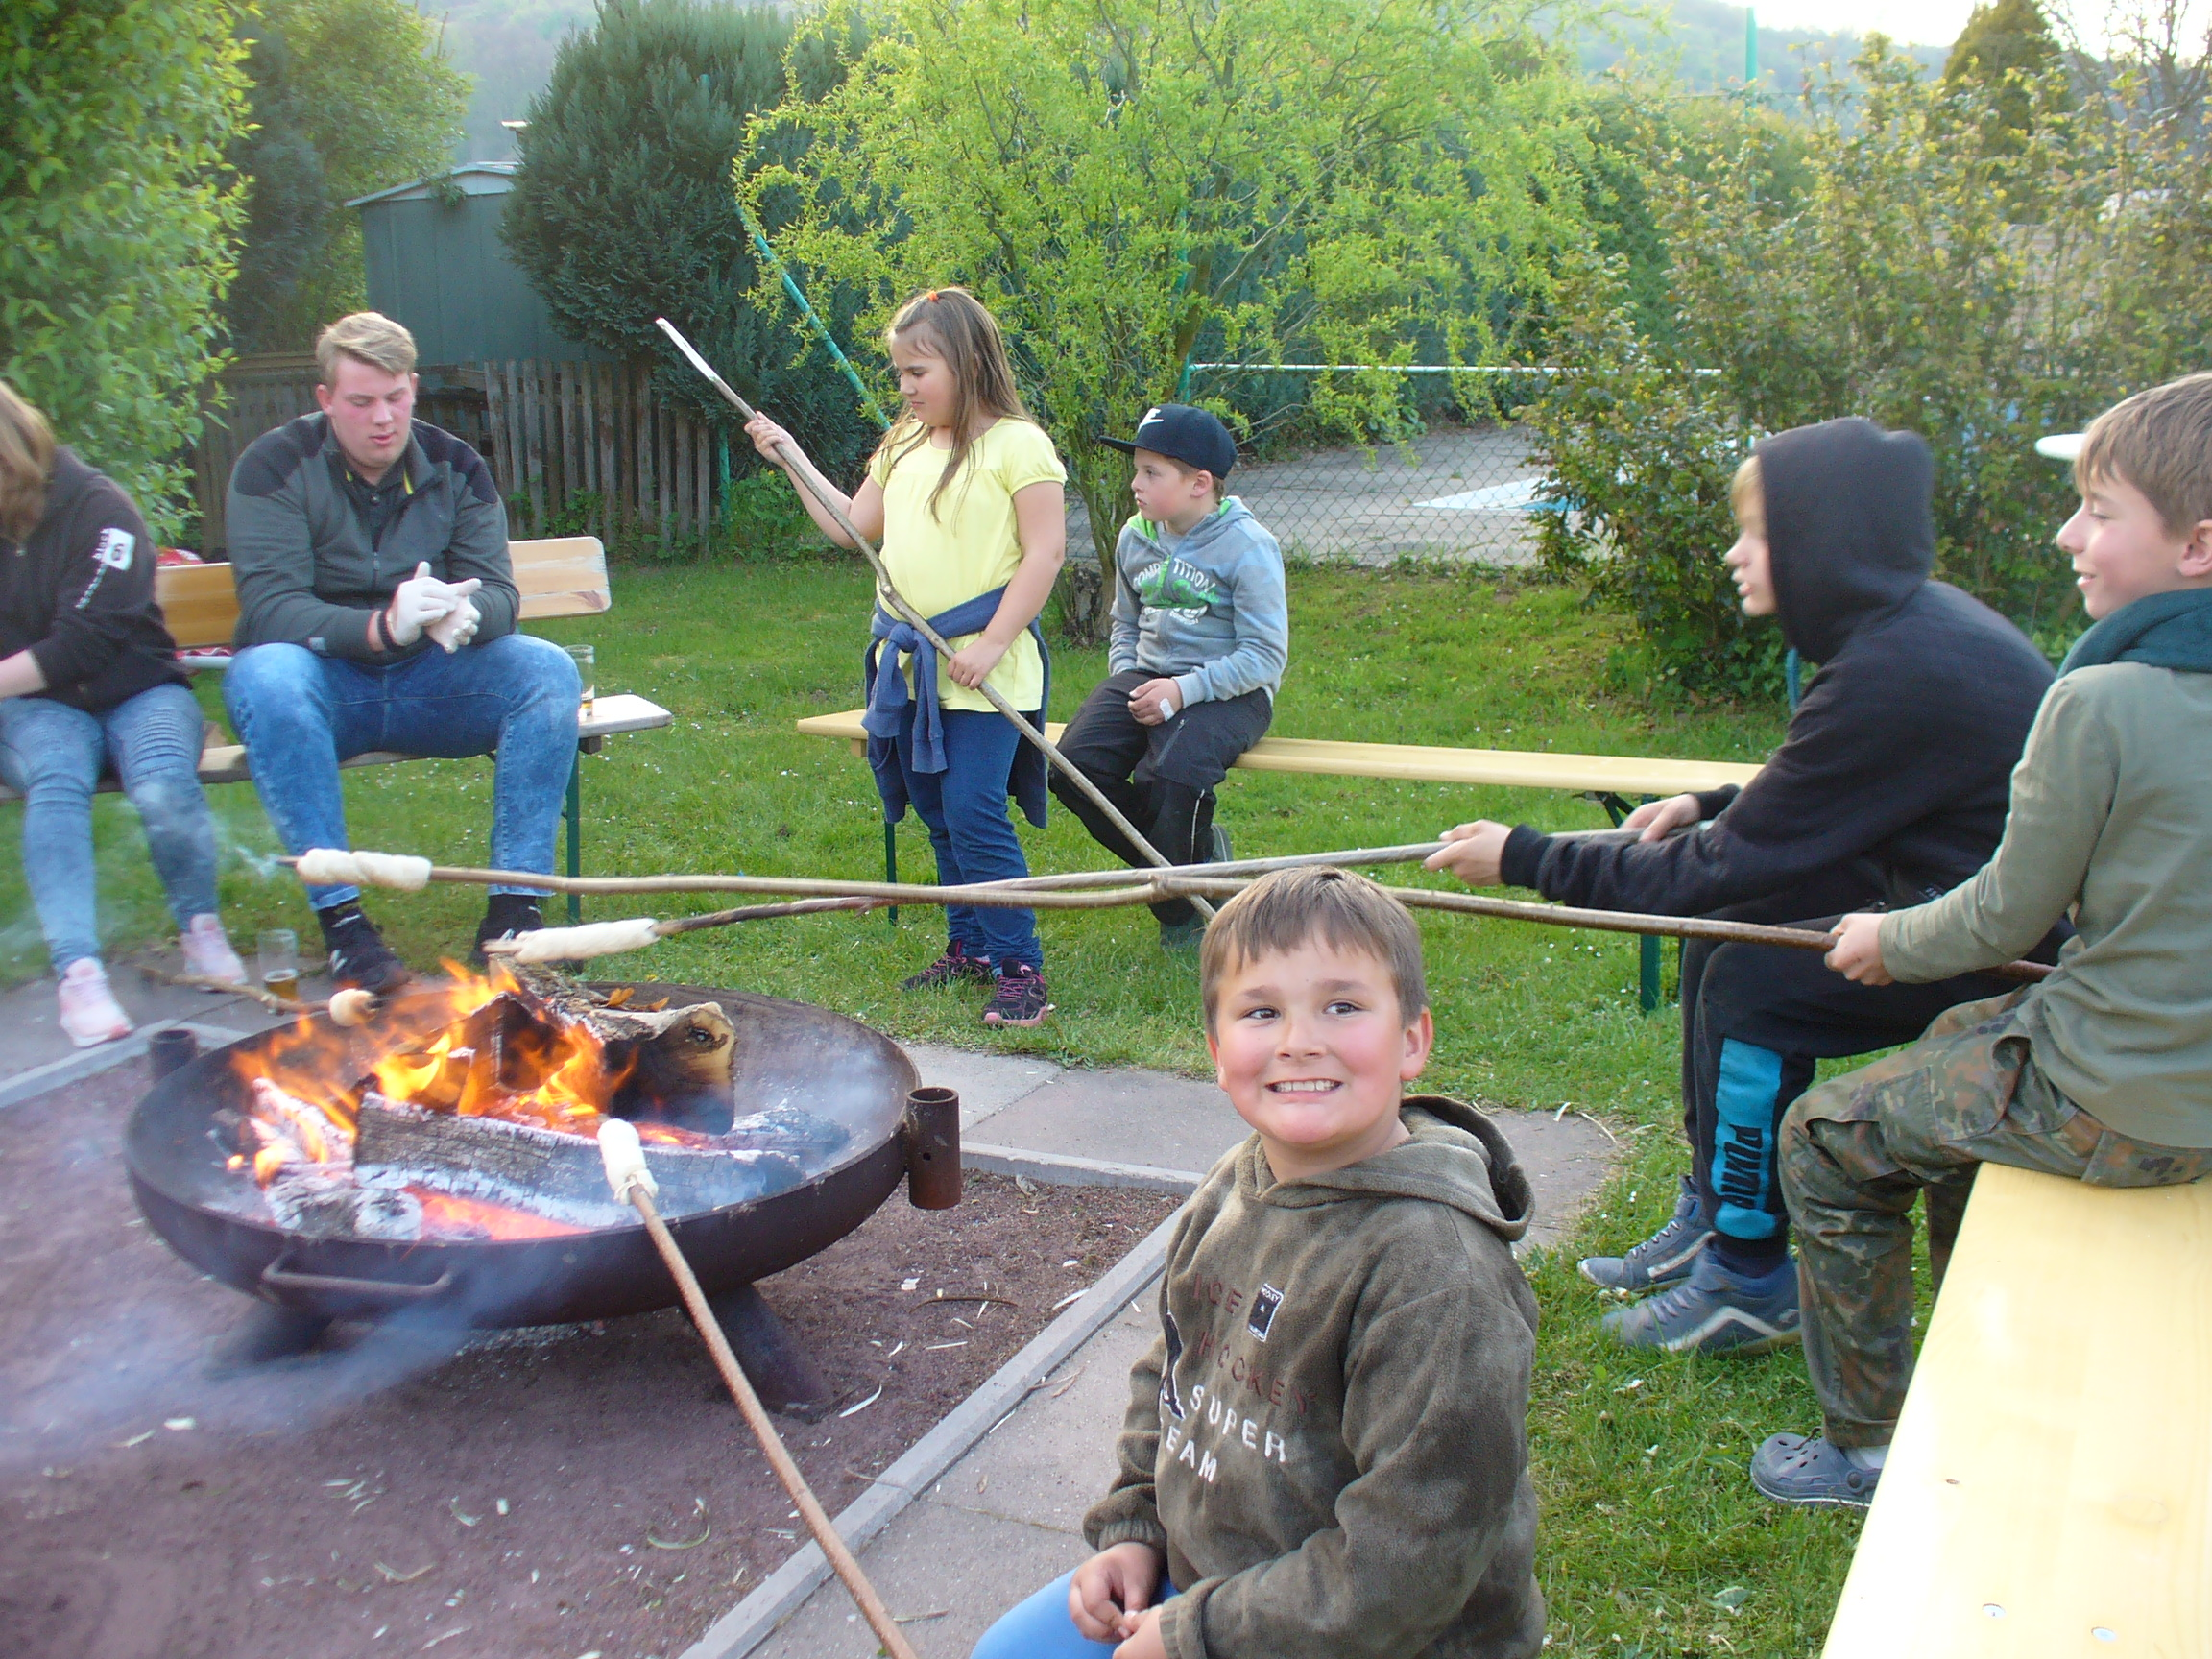 Stockbrot backen - Campingplatz Weserbergland